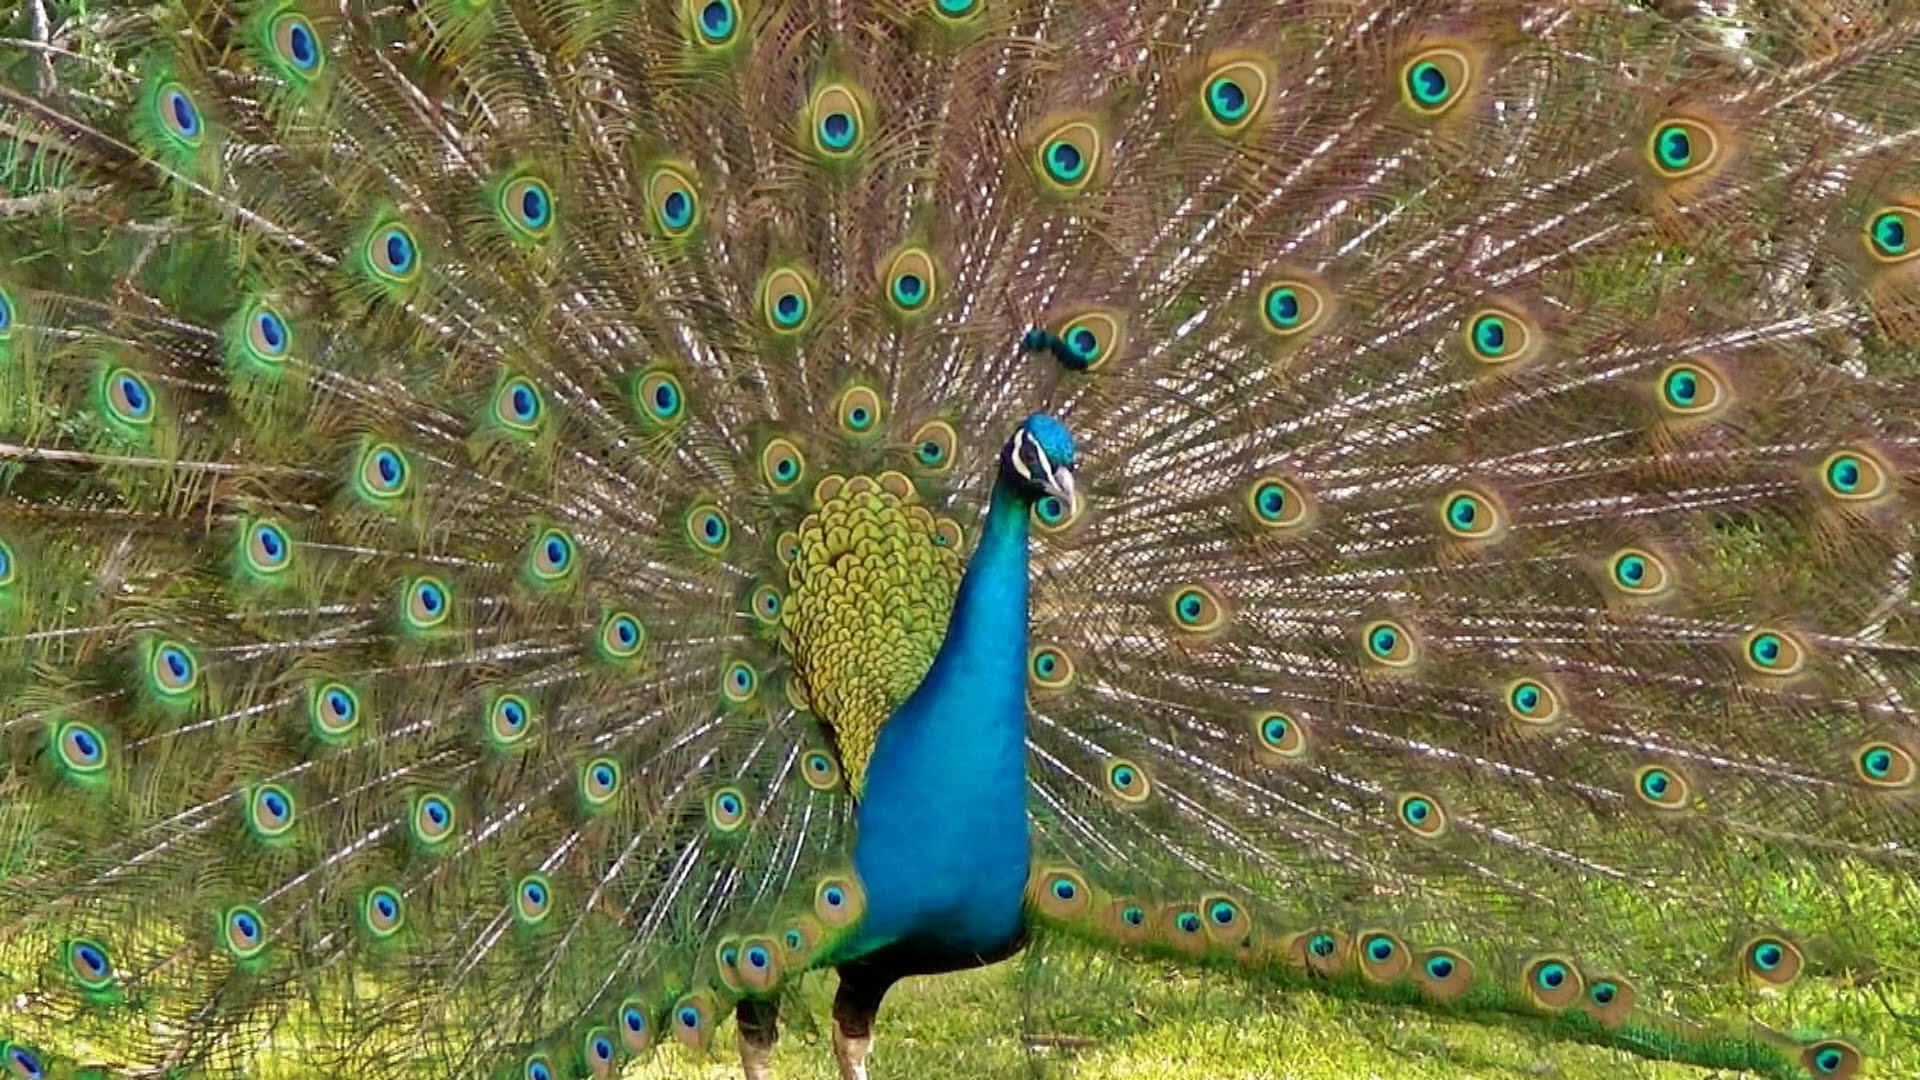 The Most Beautiful Peacock Dance Display Ever - Peacocks Opening Feathers HD u0026amp; Bird Sound - YouTube